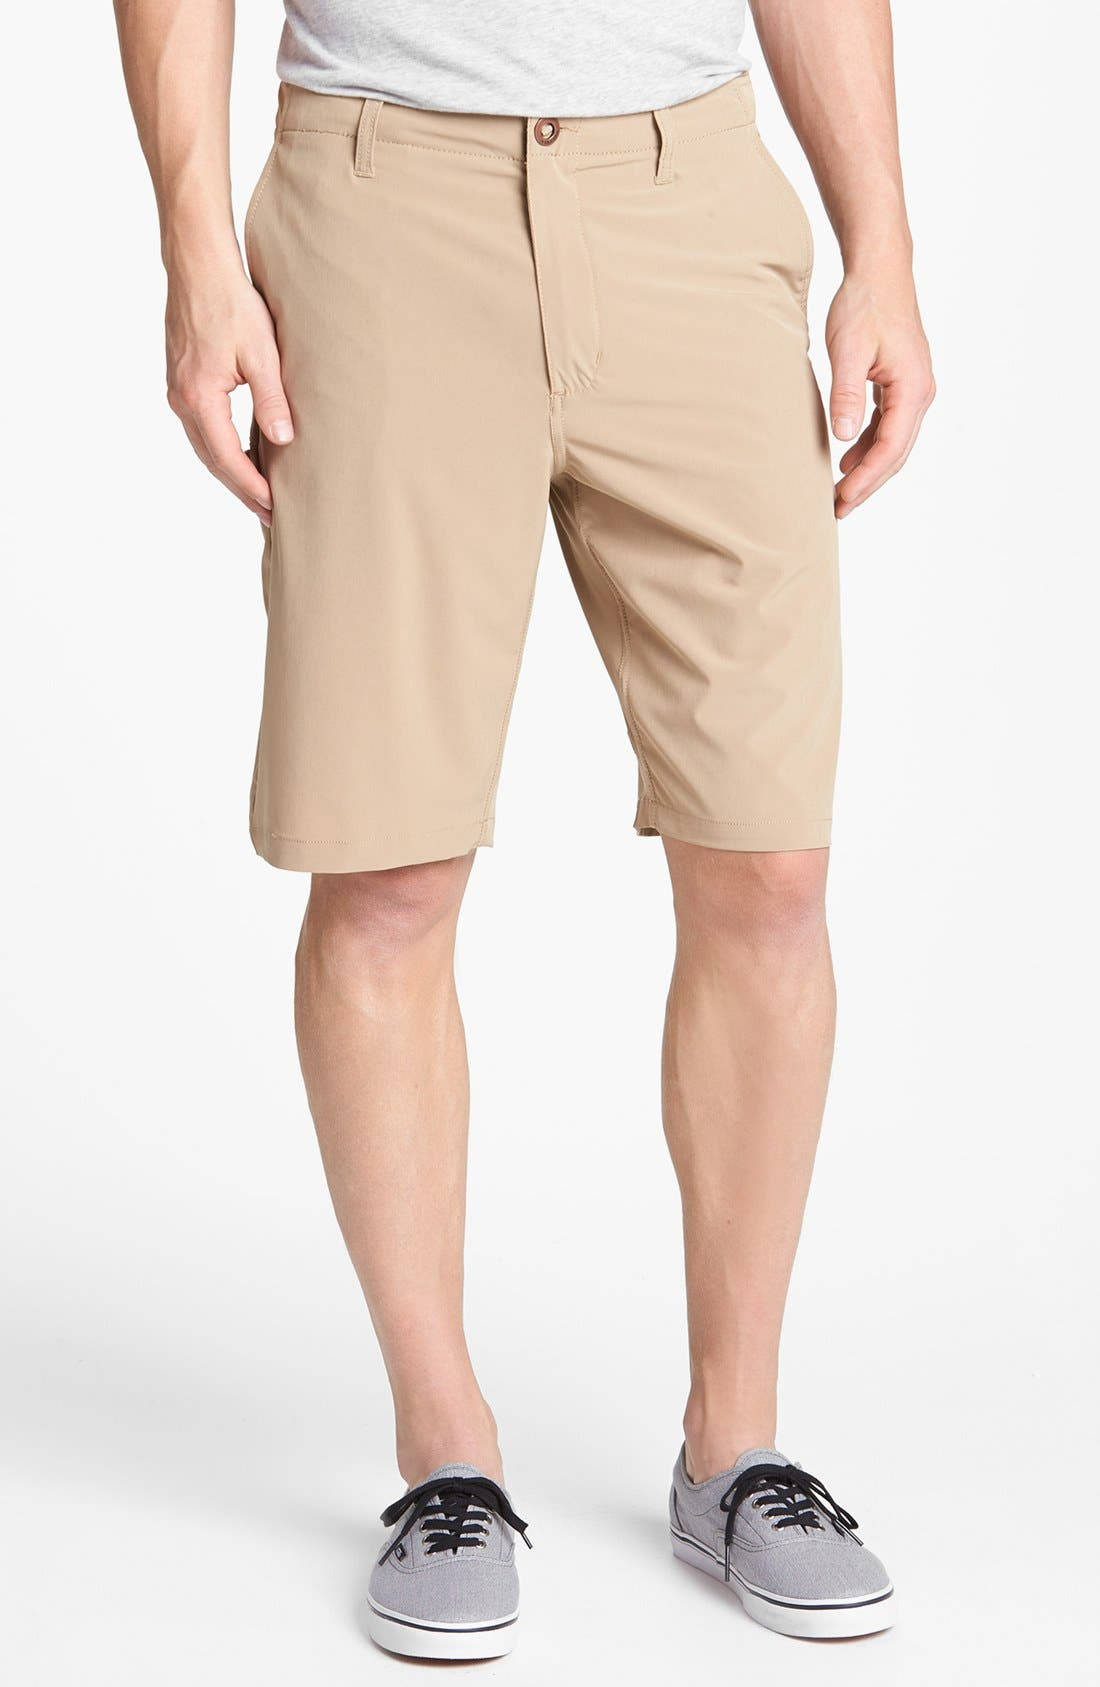 Alternate Image 1 Selected - Volcom 'Modern' Hybrid Shorts